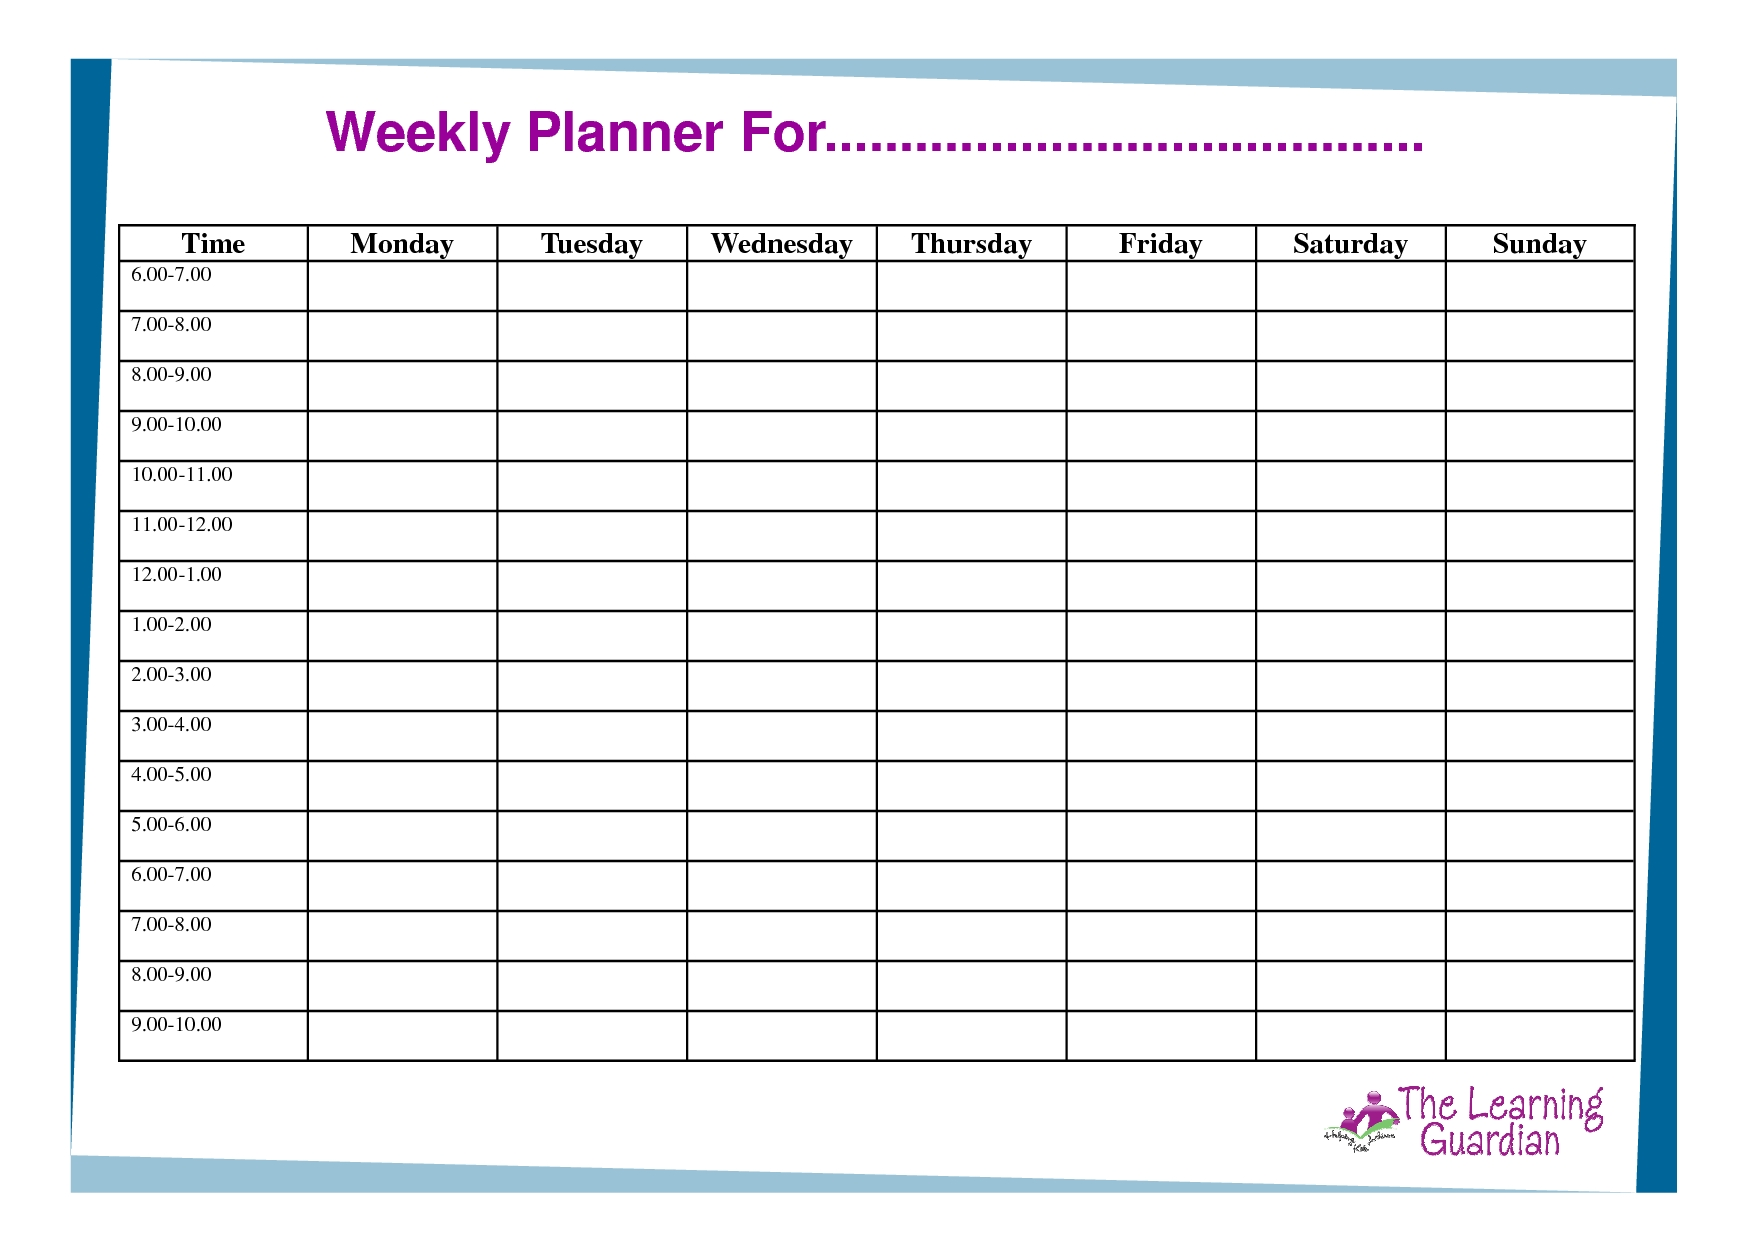 Free Printable Weekly Calendar Templates | Weekly Planner For Time inside Blank Weekly Calendar Monday To Friday